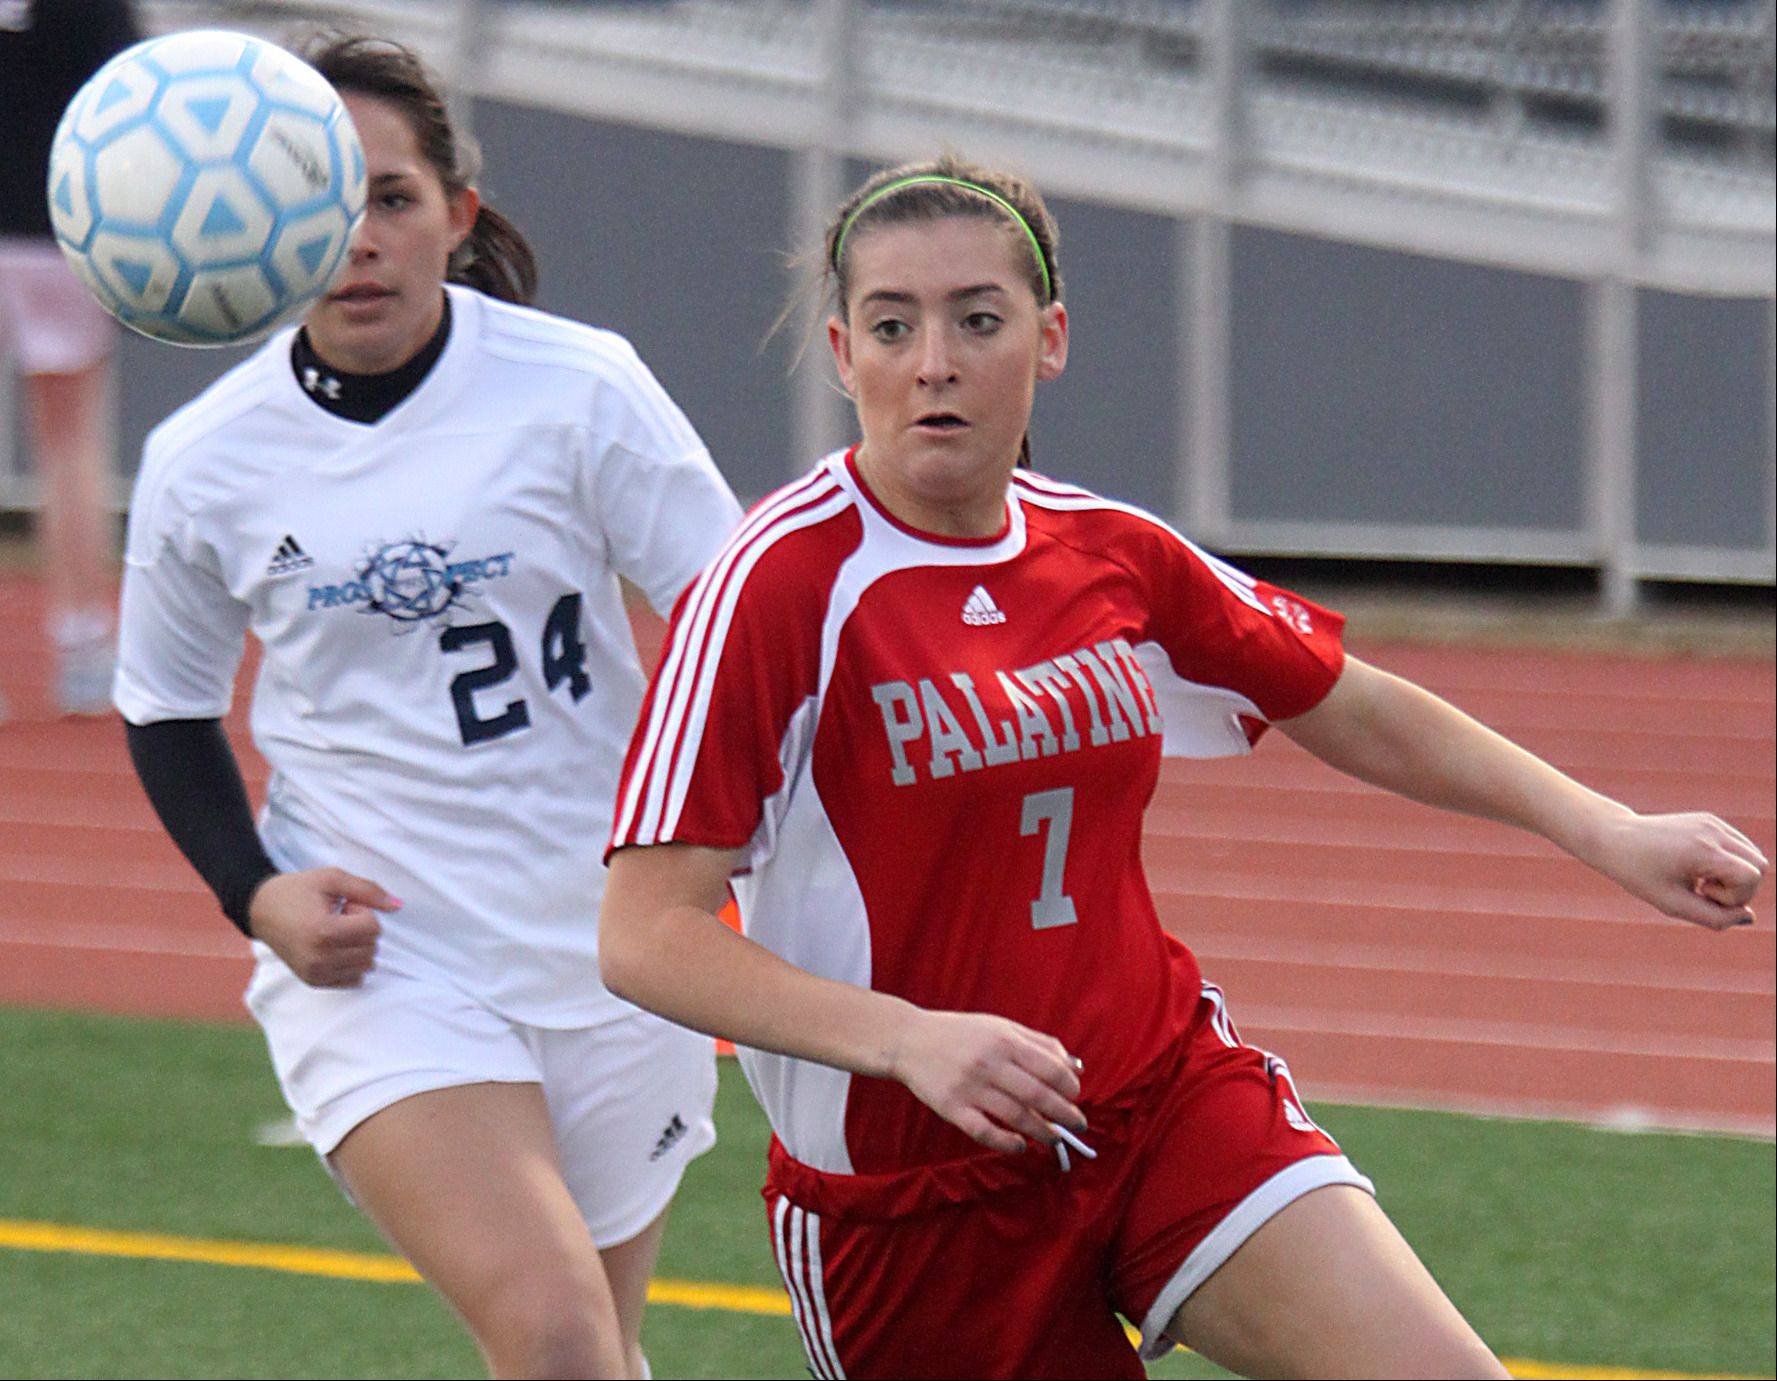 Prospect's Elena Cukurs, left, and Palatine's Michelle Raymond, right, pursue the ball Thursday at George Gattas Memorial Stadium in Mount Prospect.